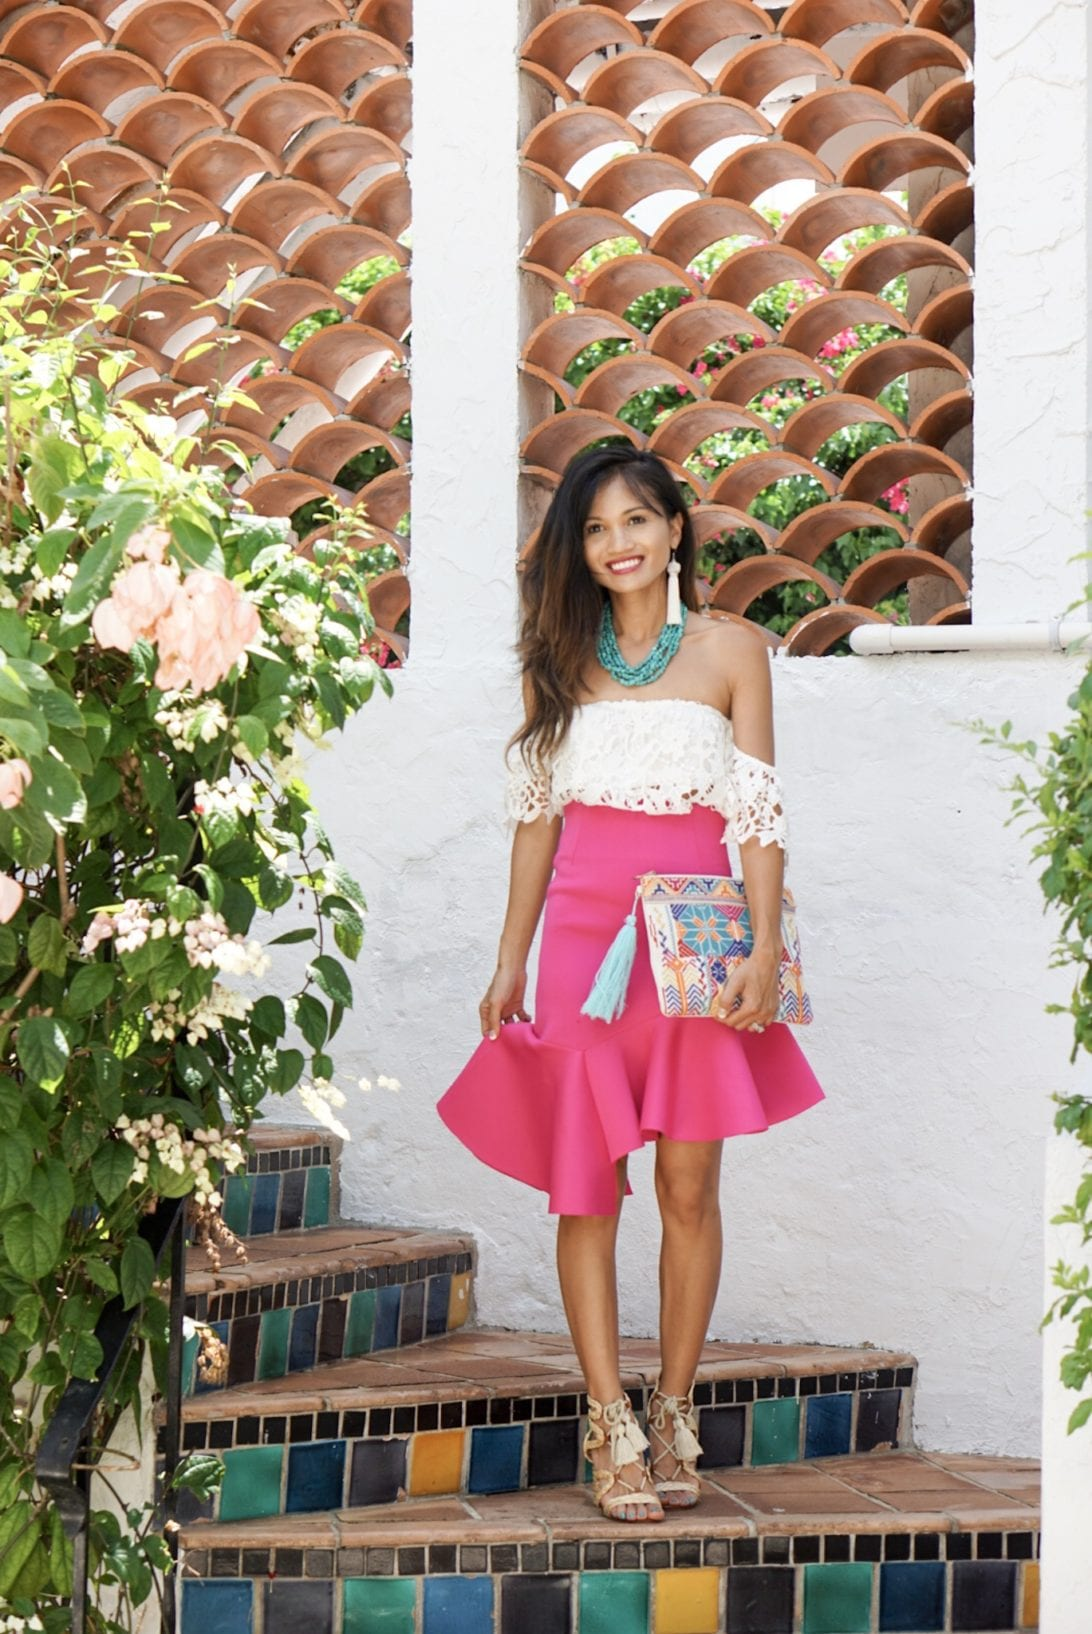 west palm beach, worth avenue, what to wear in palm beach, summer vacation style, pink ruffle skirt, off the shoulder white lace top, white tassel earrings, embroidered clutch, jute sandals, summer block heels, turquoise necklace, summer outfit, Florida vacation